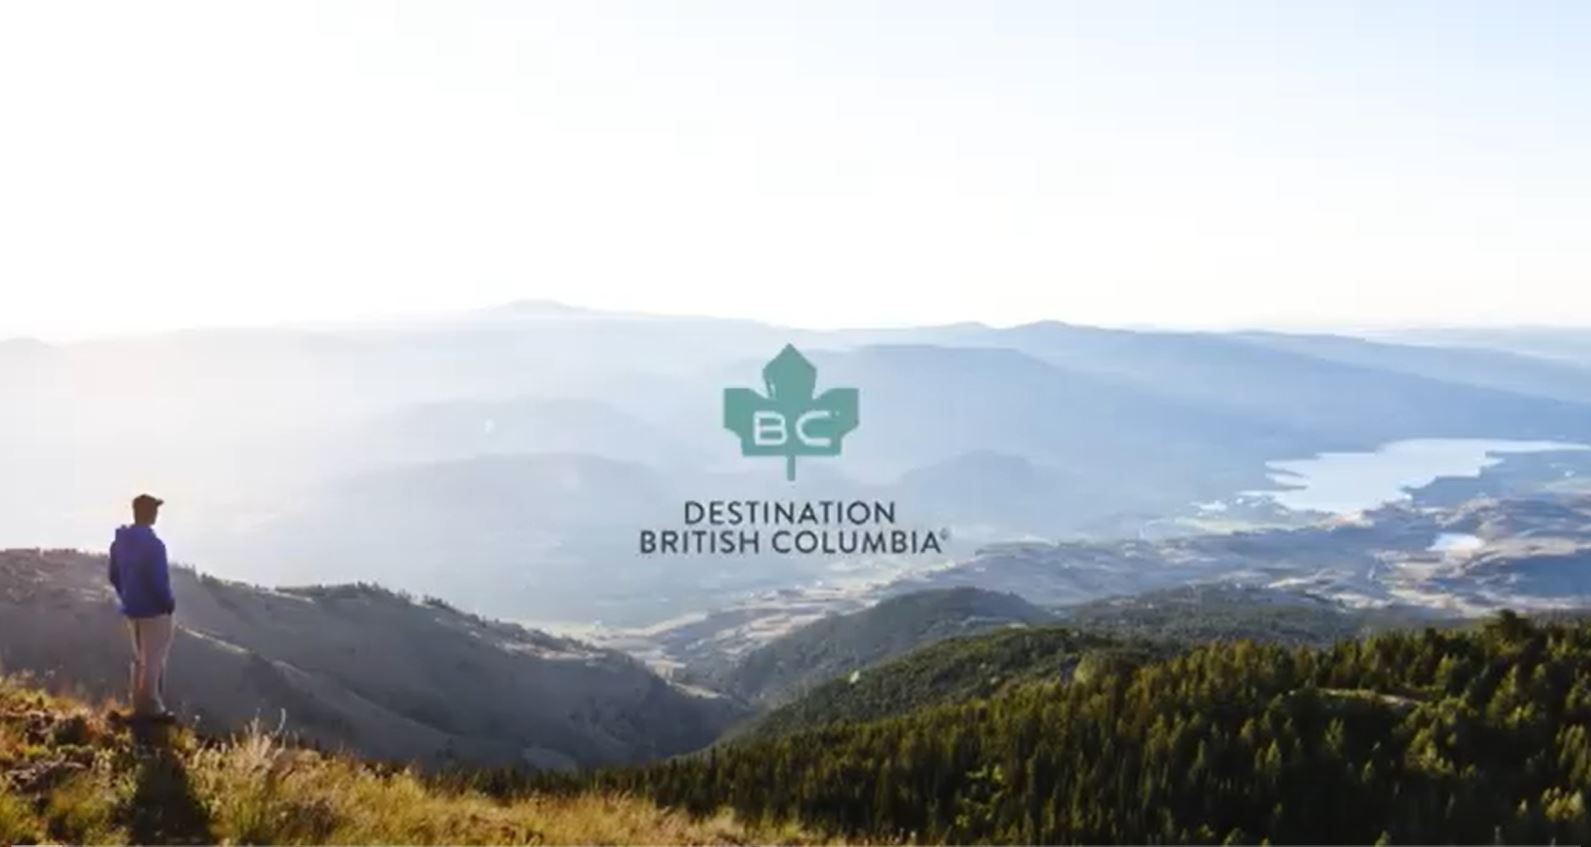 Destination BC Presentation at the BC Tourism & Hospitality Conference 2021